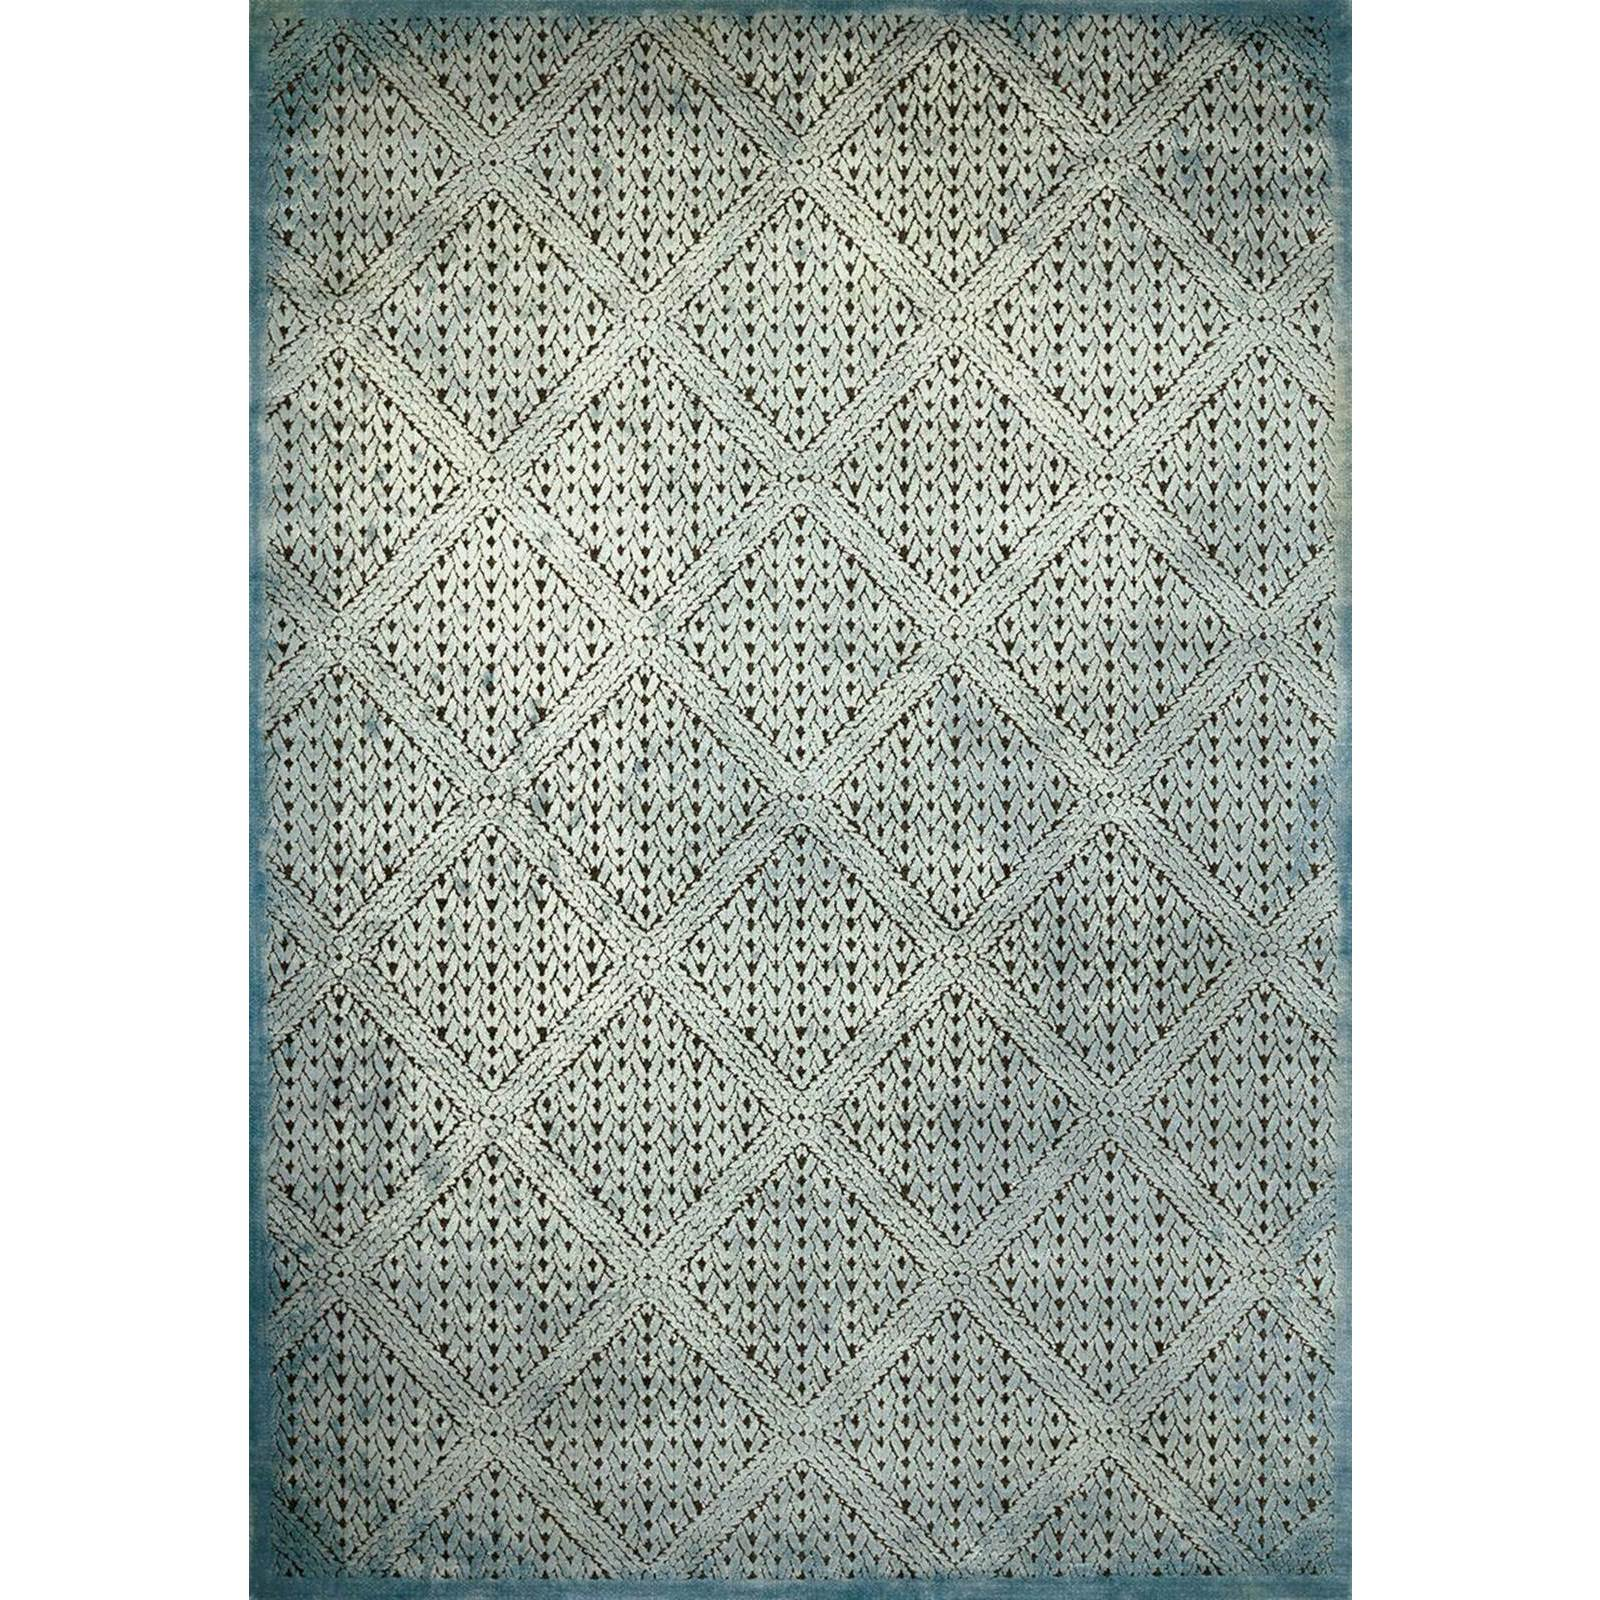 Westfield HomeLegacy Tyra Accent Rug (1'10 x 3') - 1'10 x...